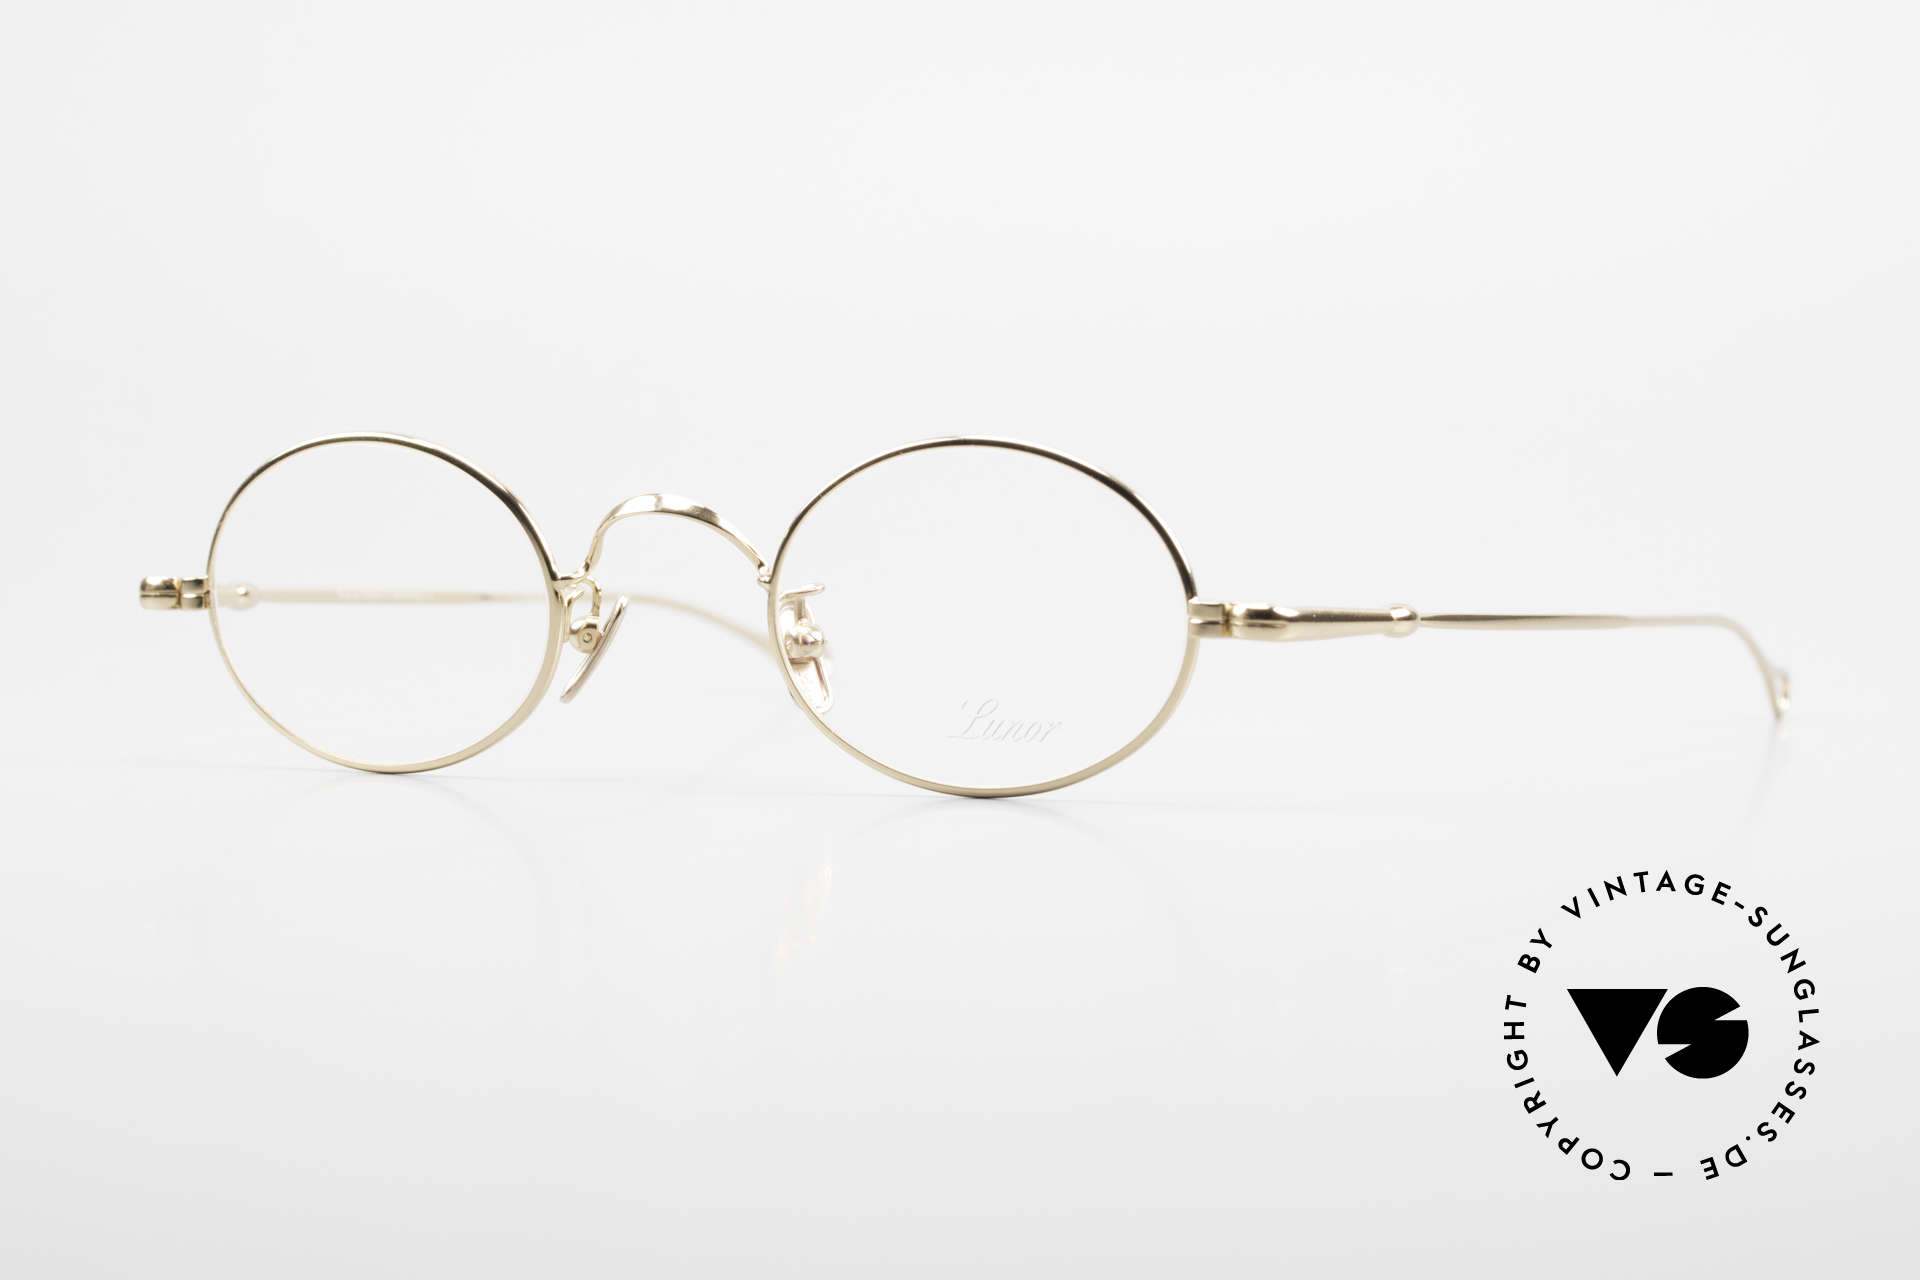 Lunor V 100 Oval Eyeglasses Gold Plated, LUNOR: honest craftsmanship with attention to details, Made for Men and Women